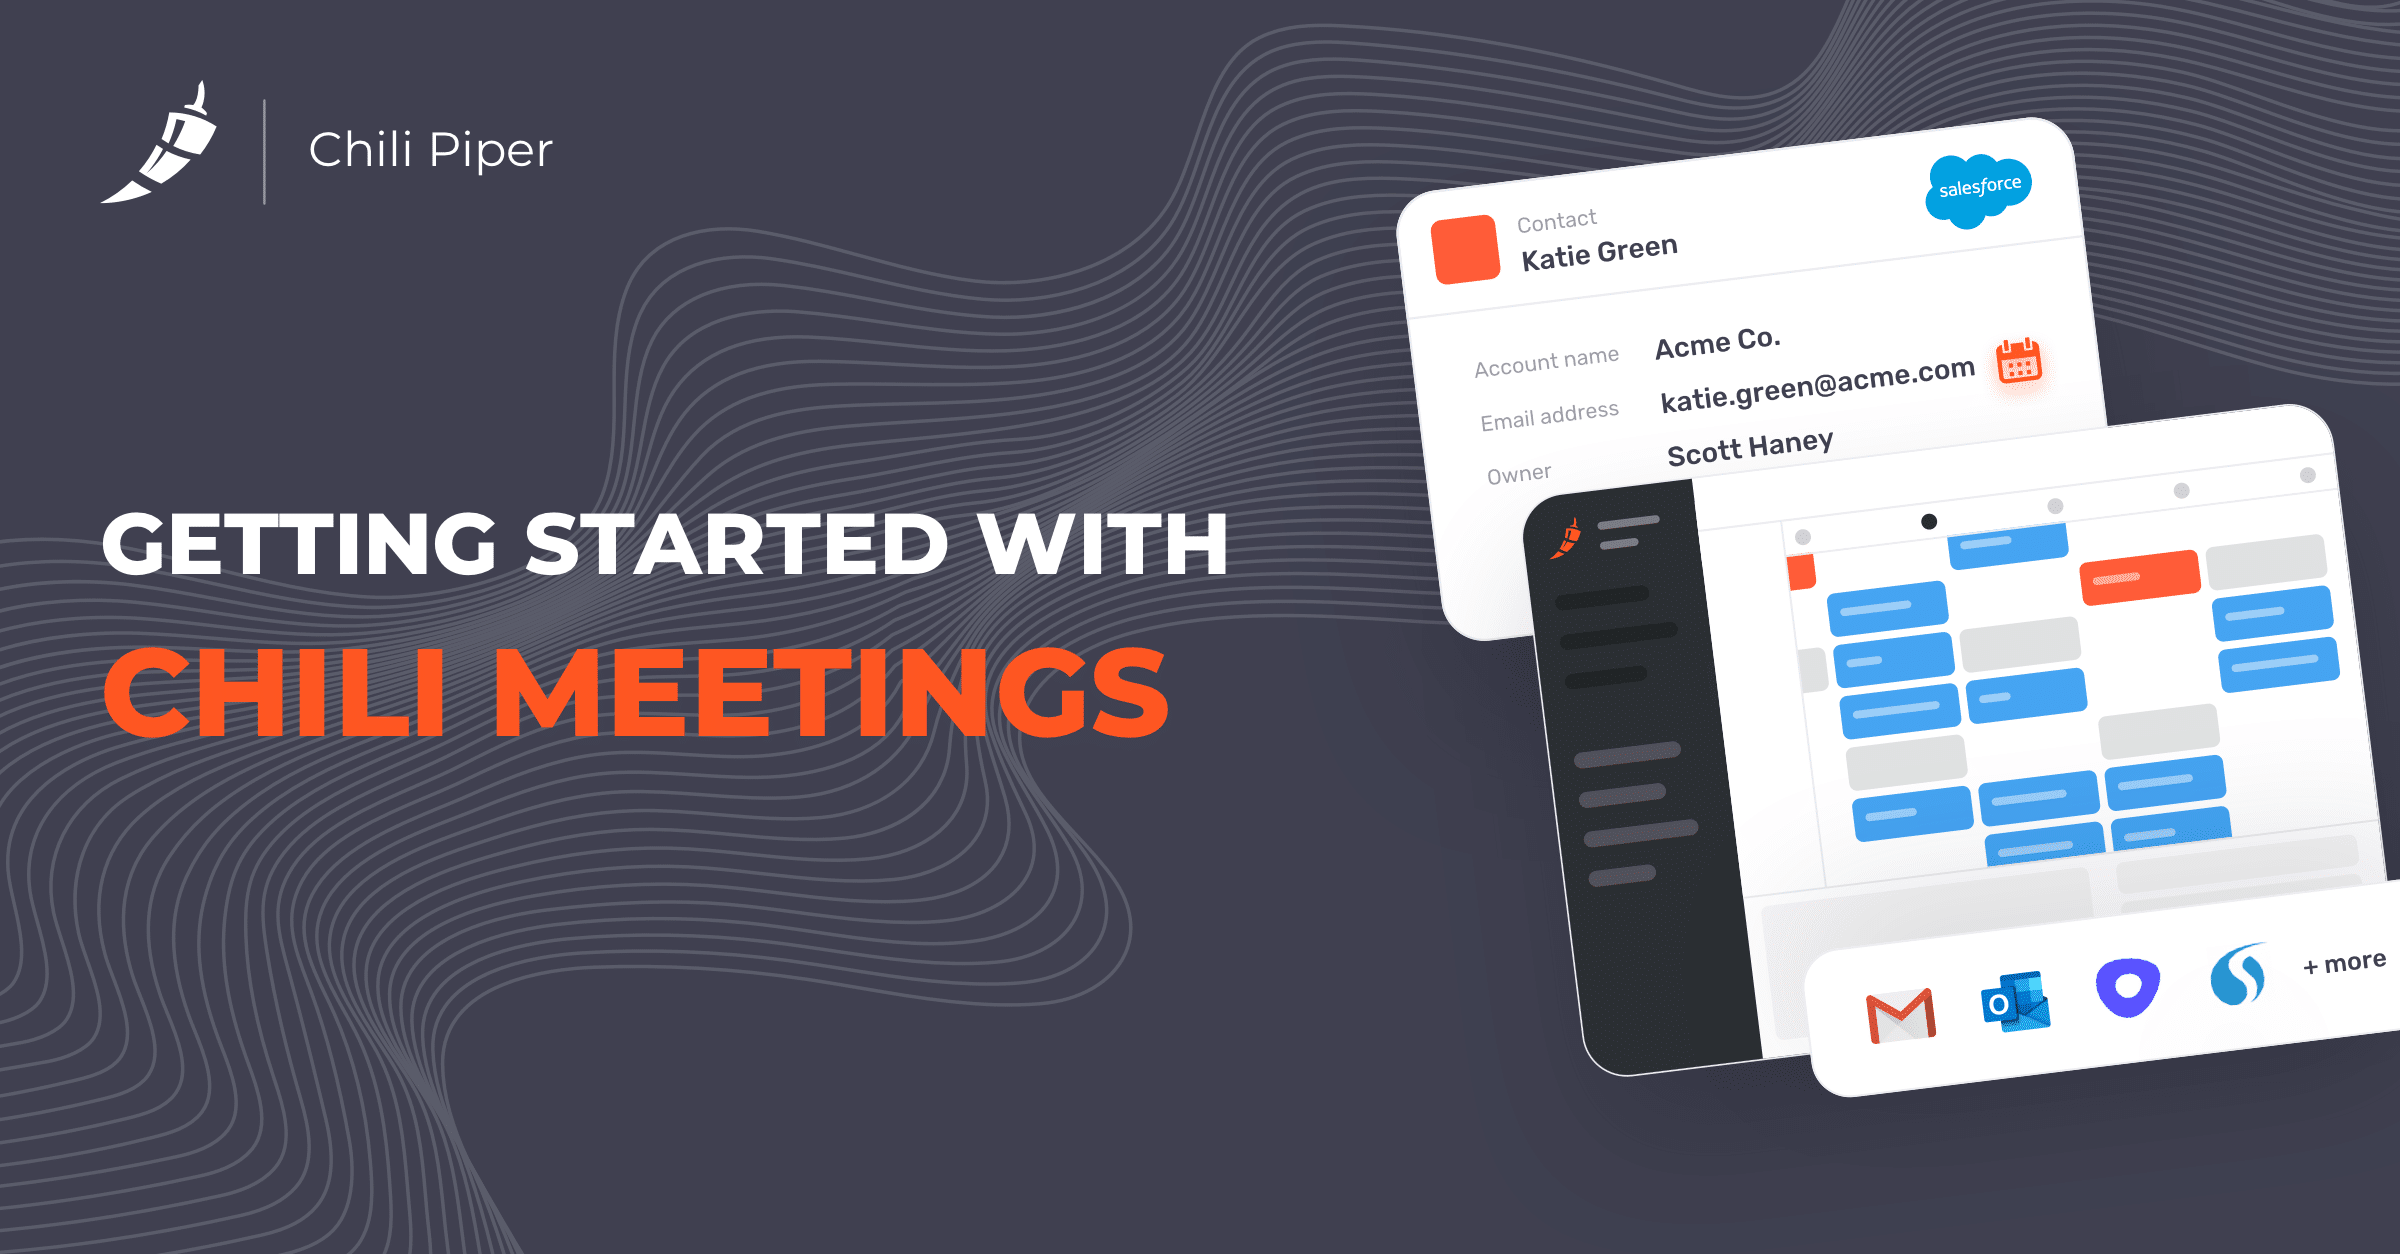 Getting Started with Chili Meetings